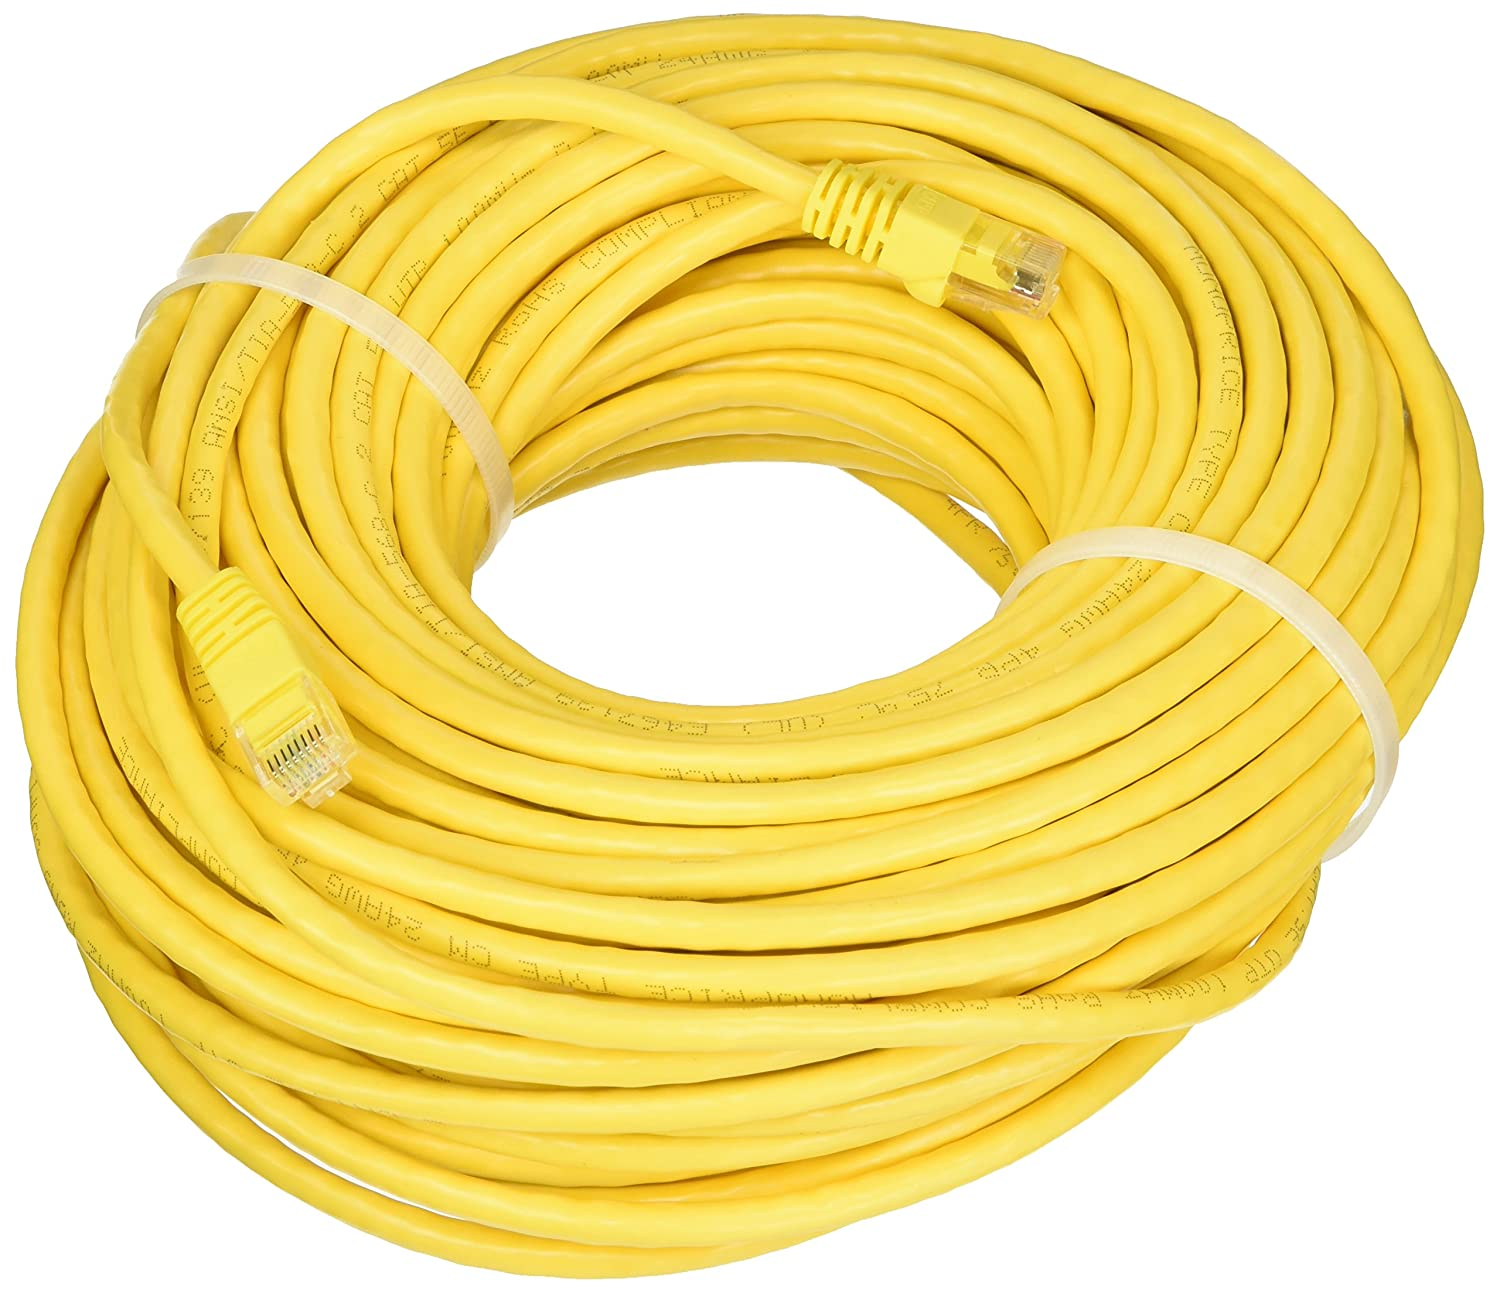 Monoprice Cat5e Ethernet Patch Cable Network Internet Inter Wire White 550mhz 24awg On Connector Wiring Cord Rj45 Stranded 350mhz Utp Pure Bare Copper 100ft